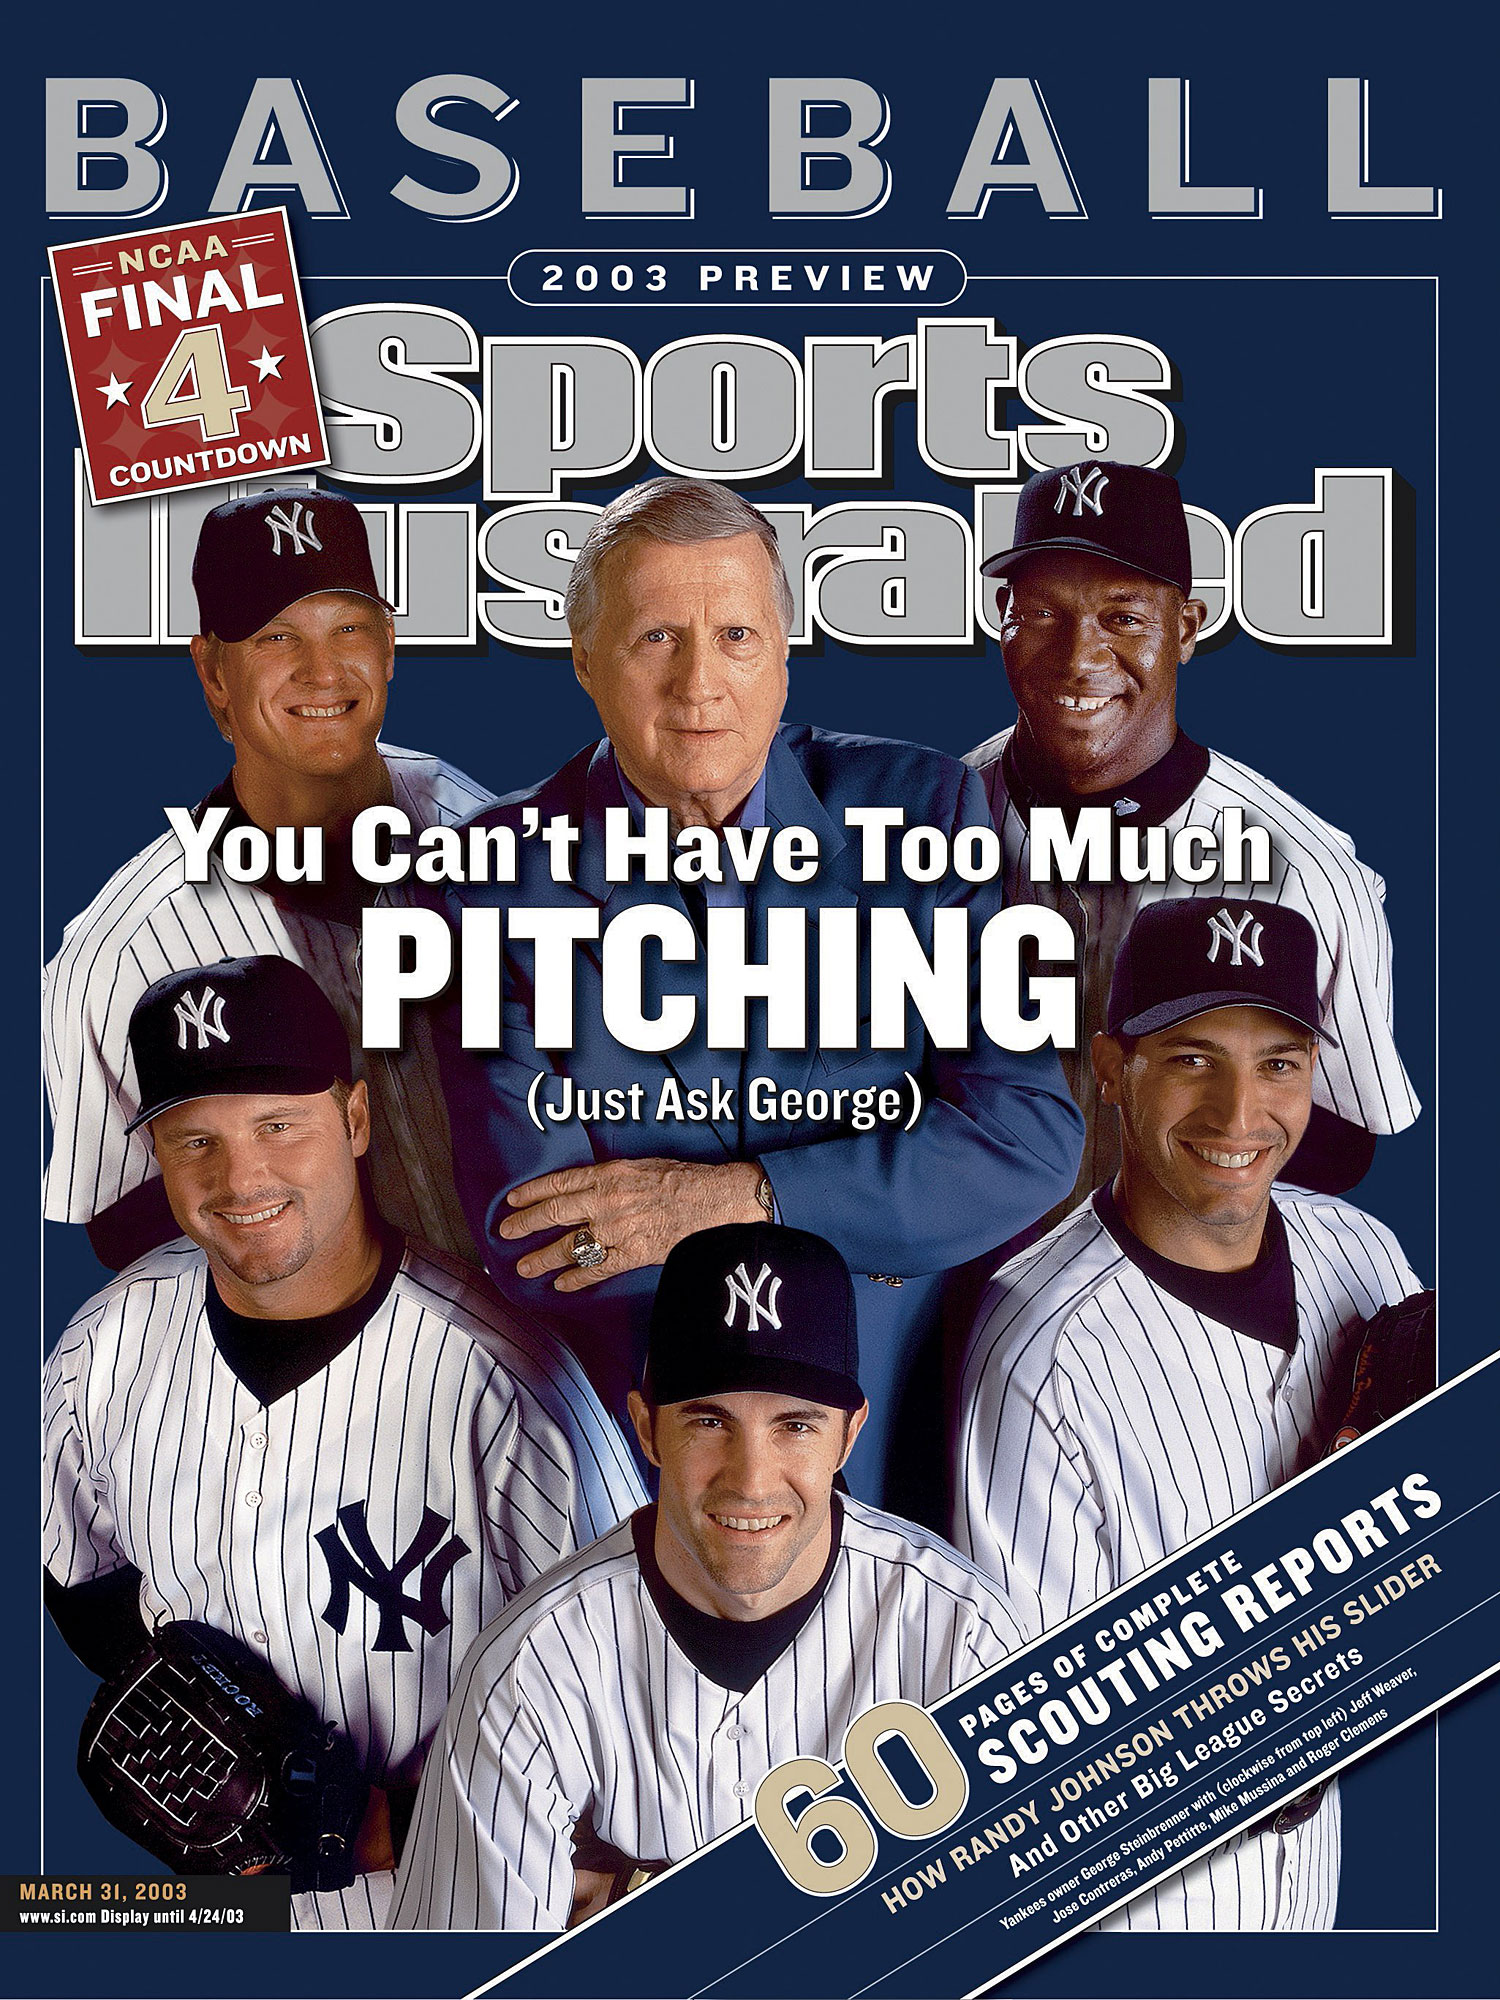 Roger Clemens, Mike Mussina, Jose Contreras, Jeff Weaver, Andy Pettitte, George Steinbrenner, New York Yankees